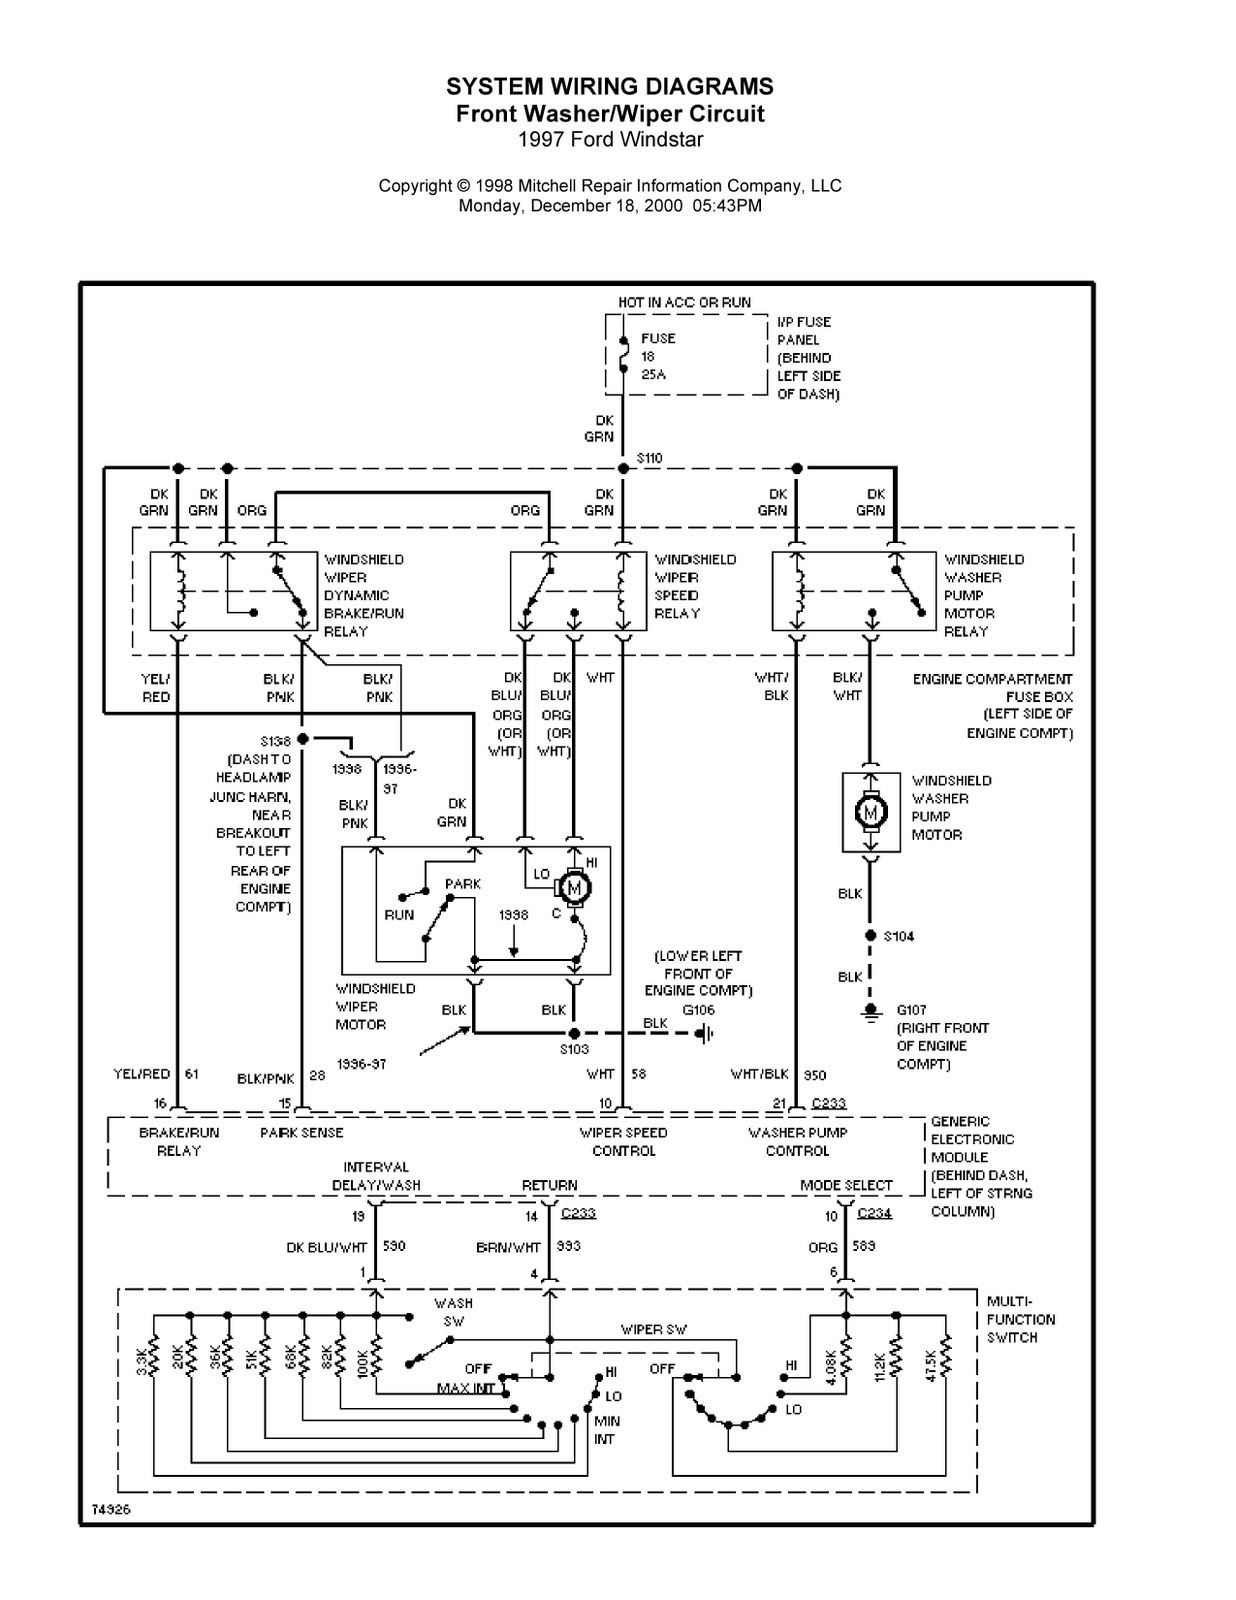 0051 1997 ford windstar complete system wiring diagrams wiring 1998 Dodge Grand Caravan Wiring Diagram at n-0.co